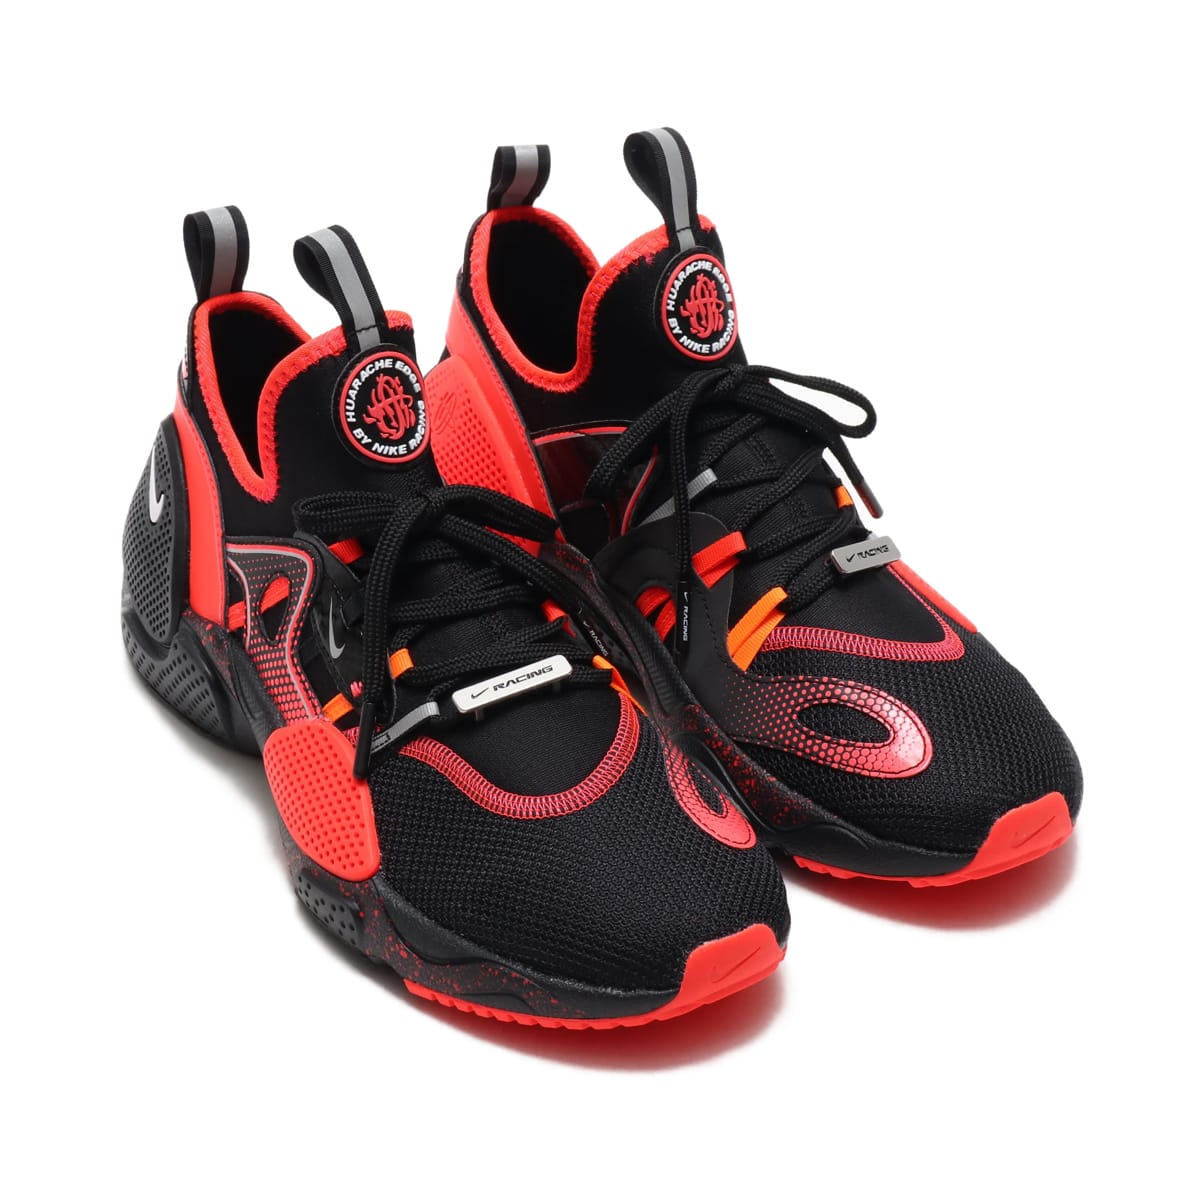 NIKE HUARACHE E.D.G.E. AS QS  BLACK/WHITE-BRIGHT CRIMSON-TOTAL ORANGE 19SP-I_photo_large